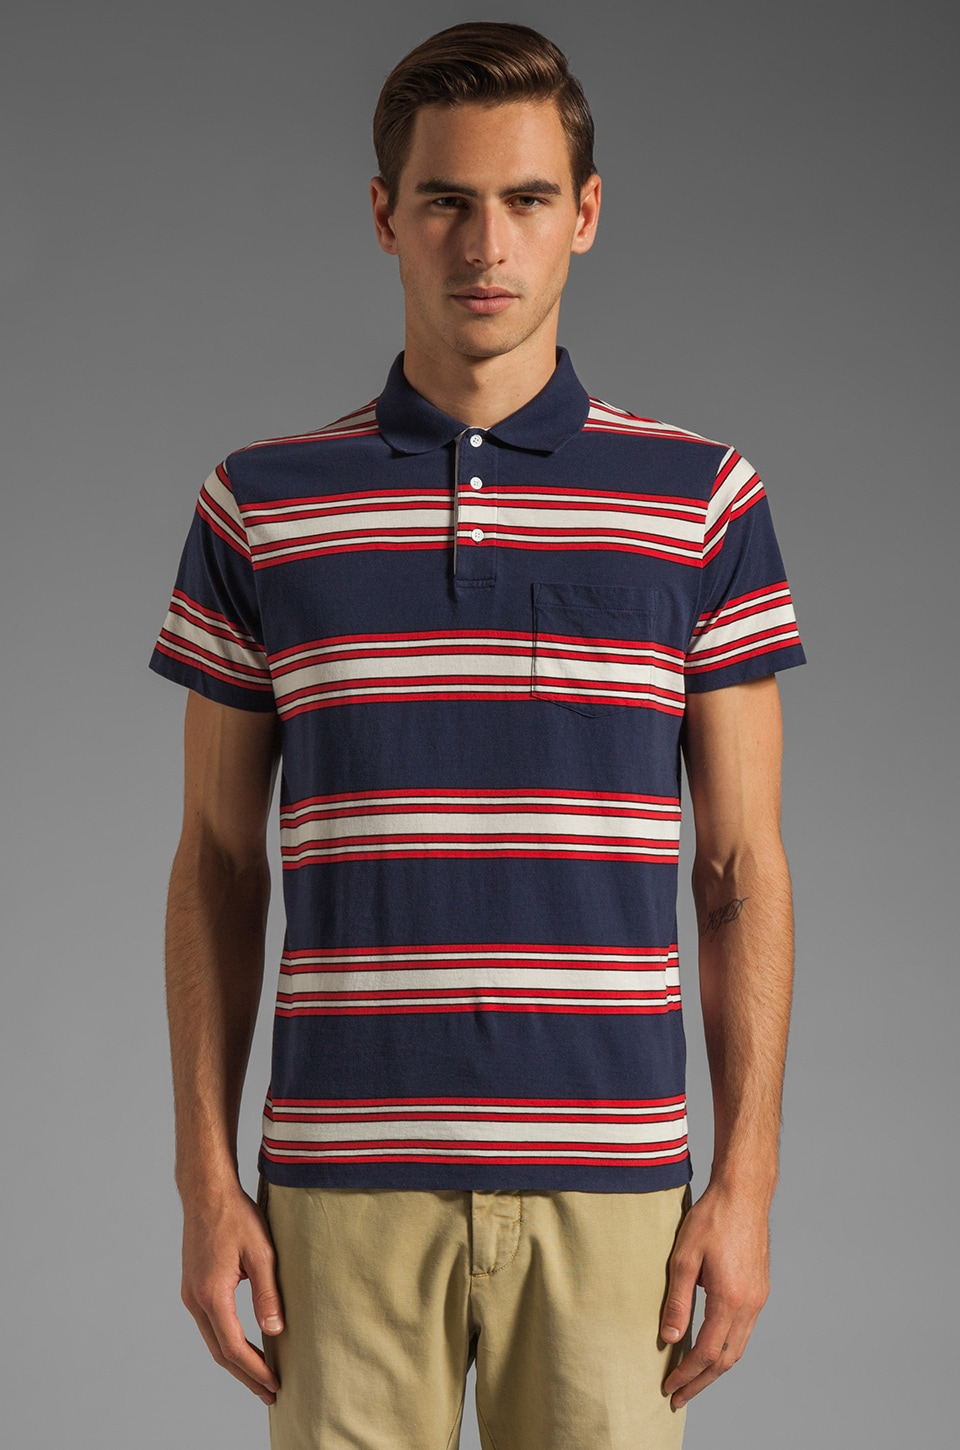 GANT Rugger Awning Stripe Polo in Navy